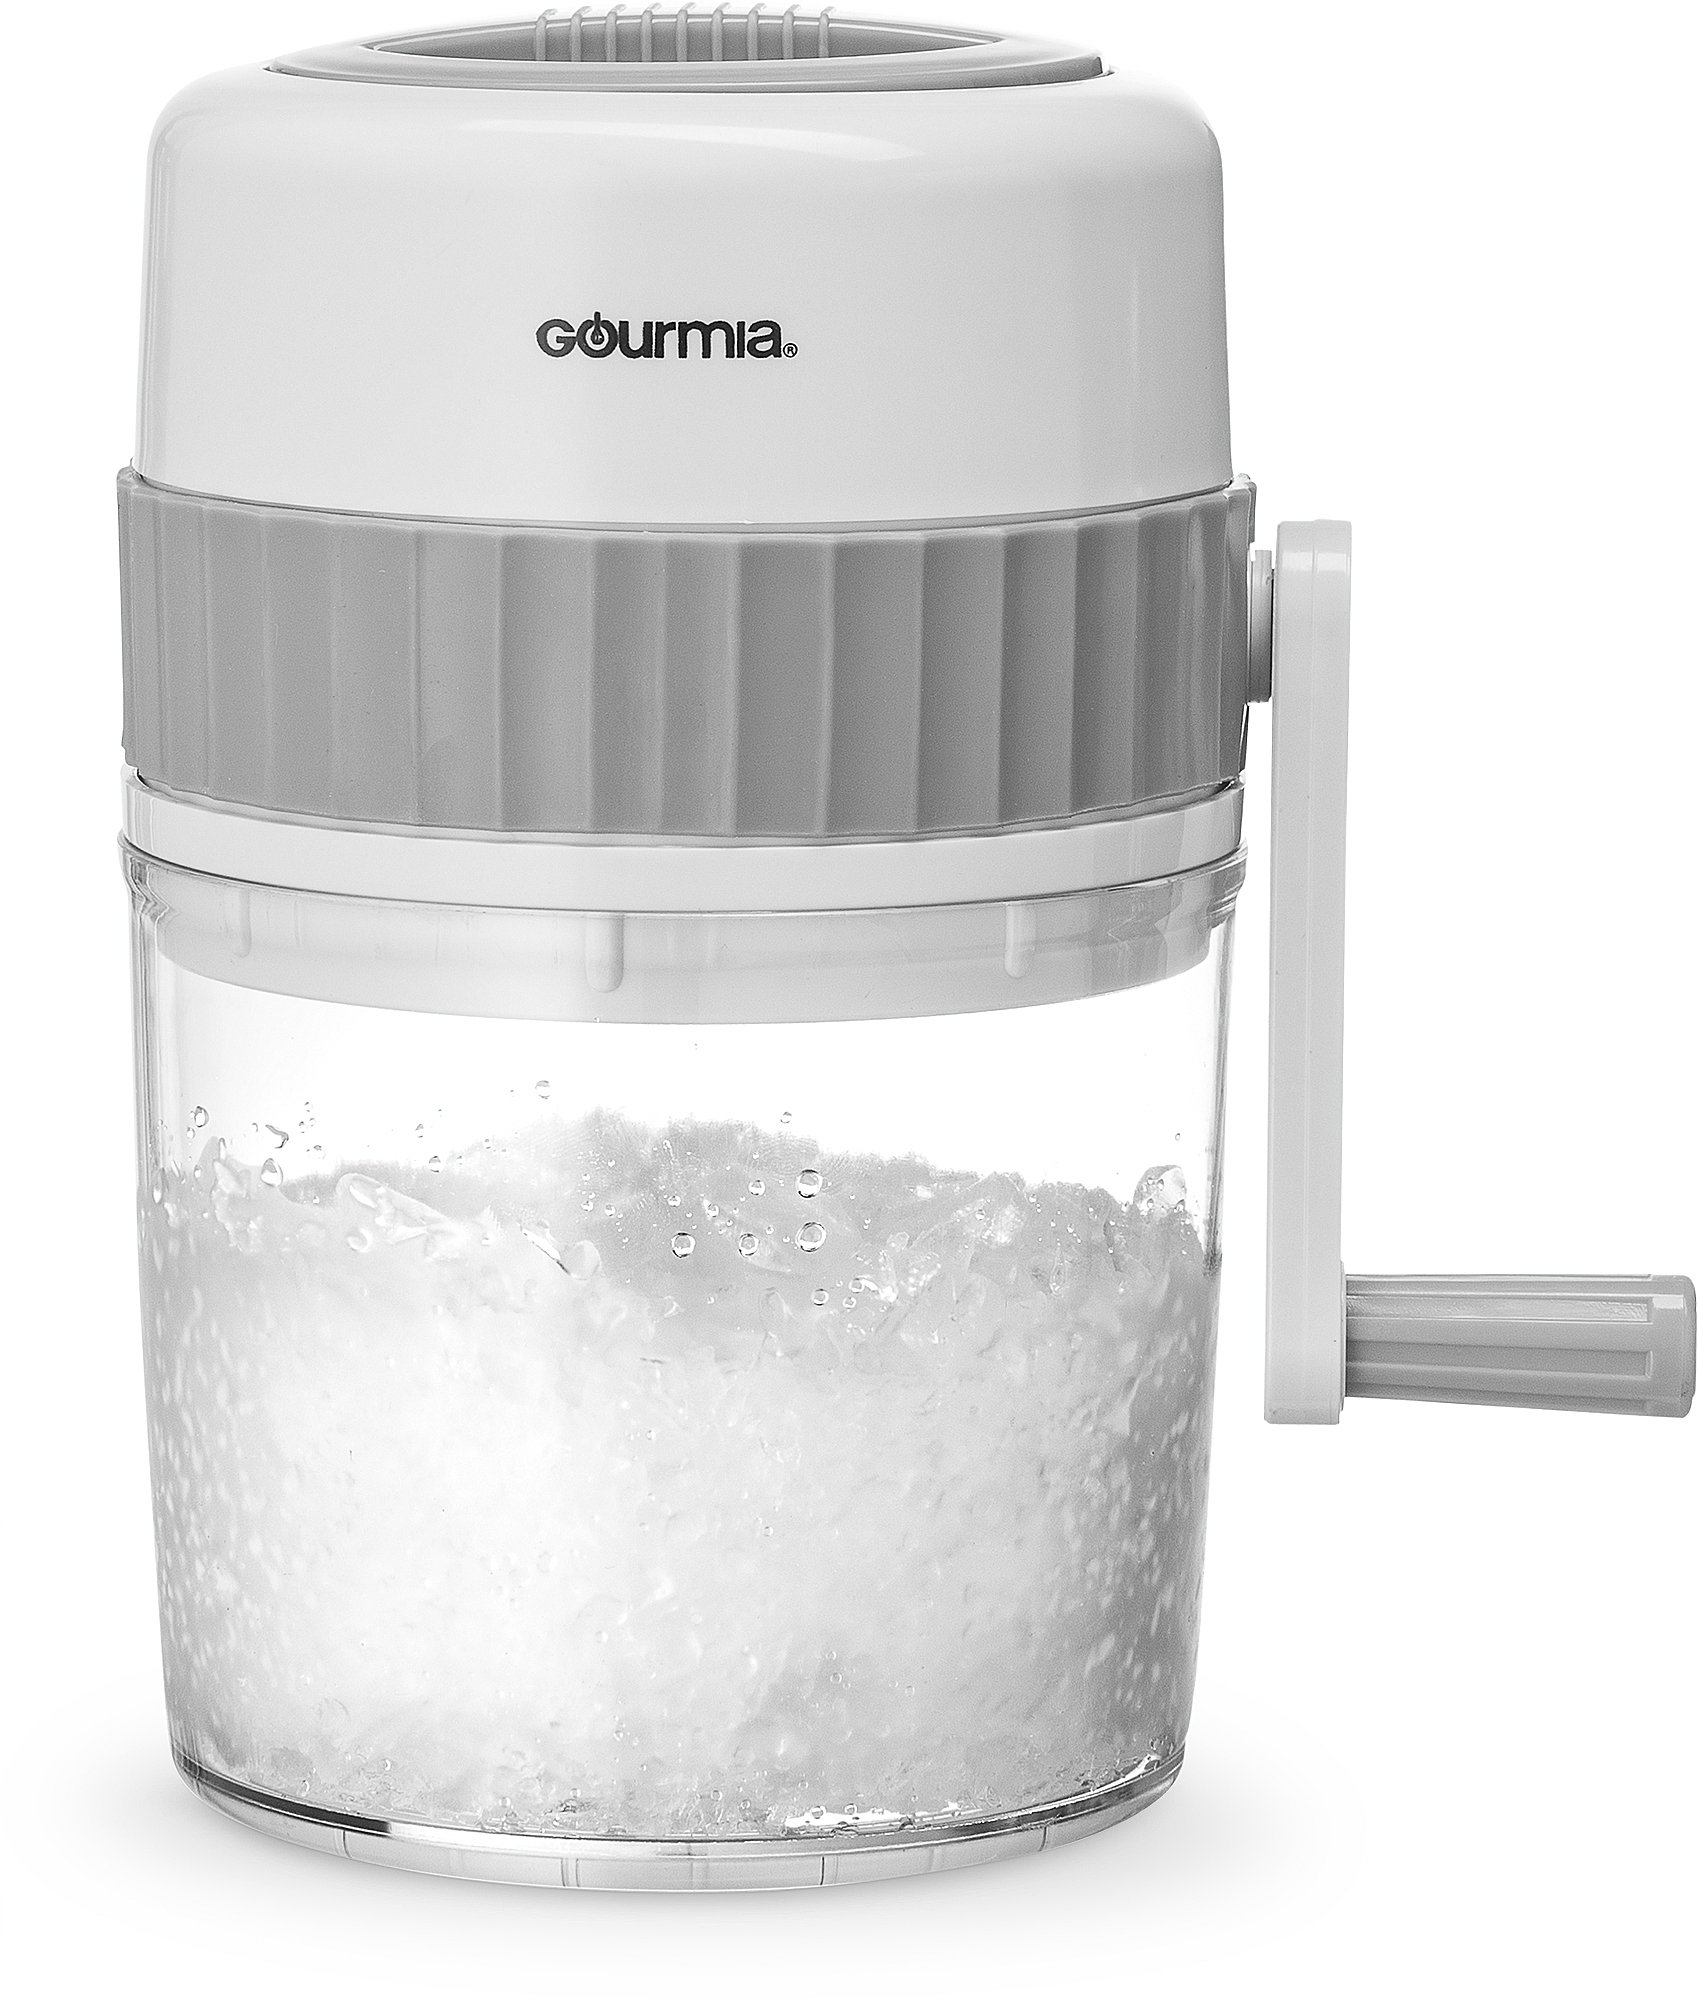 Gourmia GIC9635 Ice Shaver - Manual Hand Crank Operated Ice Breaker with Stainless Steel Blades for Fast Crushing - BPA Free by Gourmia